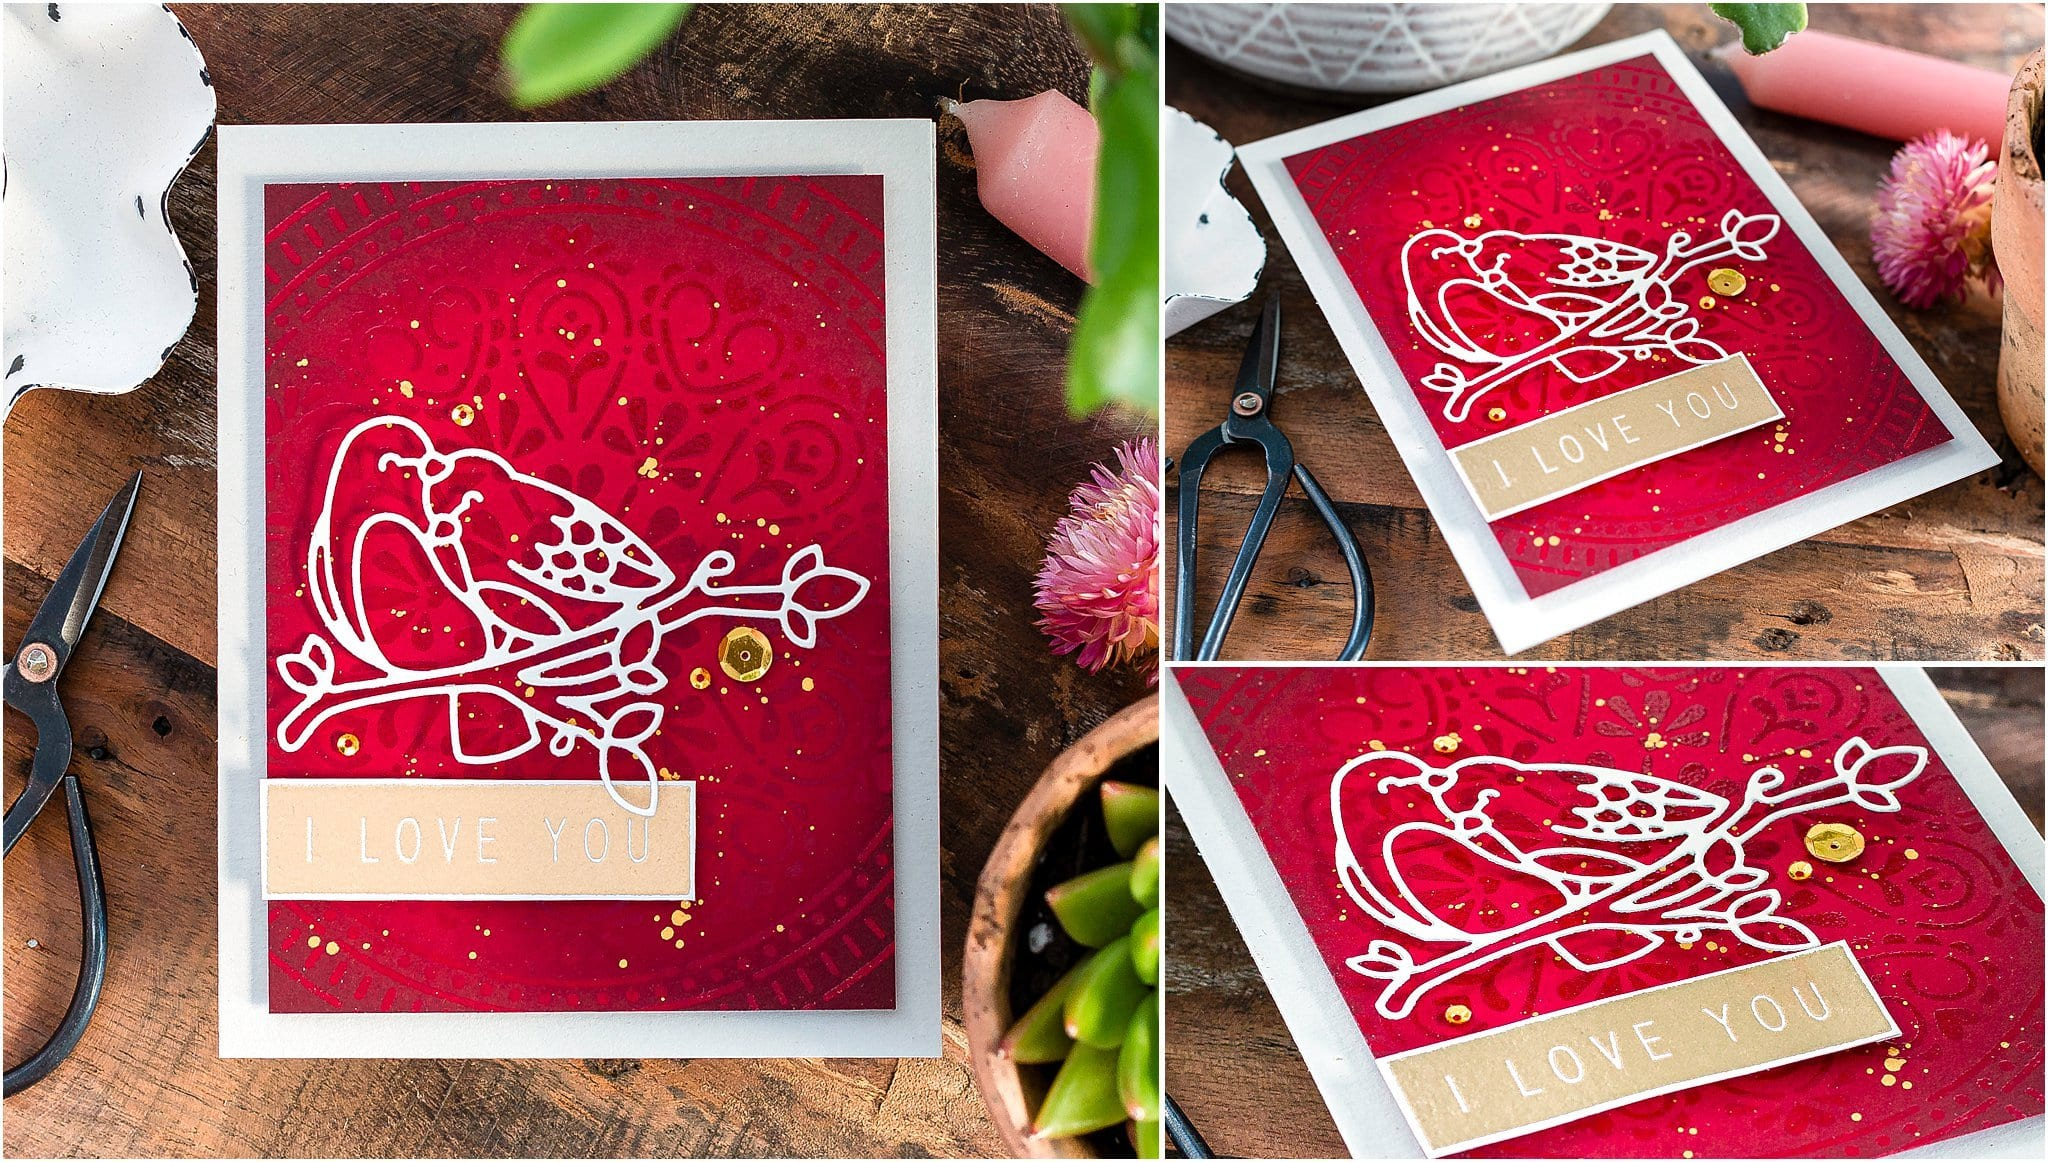 Video tutorial sharing a simple handmade Valentine's card by Debby Hughes #handmadecards #cardmaking #cardmakingideas #cardmakingtechniques  #cardmakingtutorials #handmadecardideas